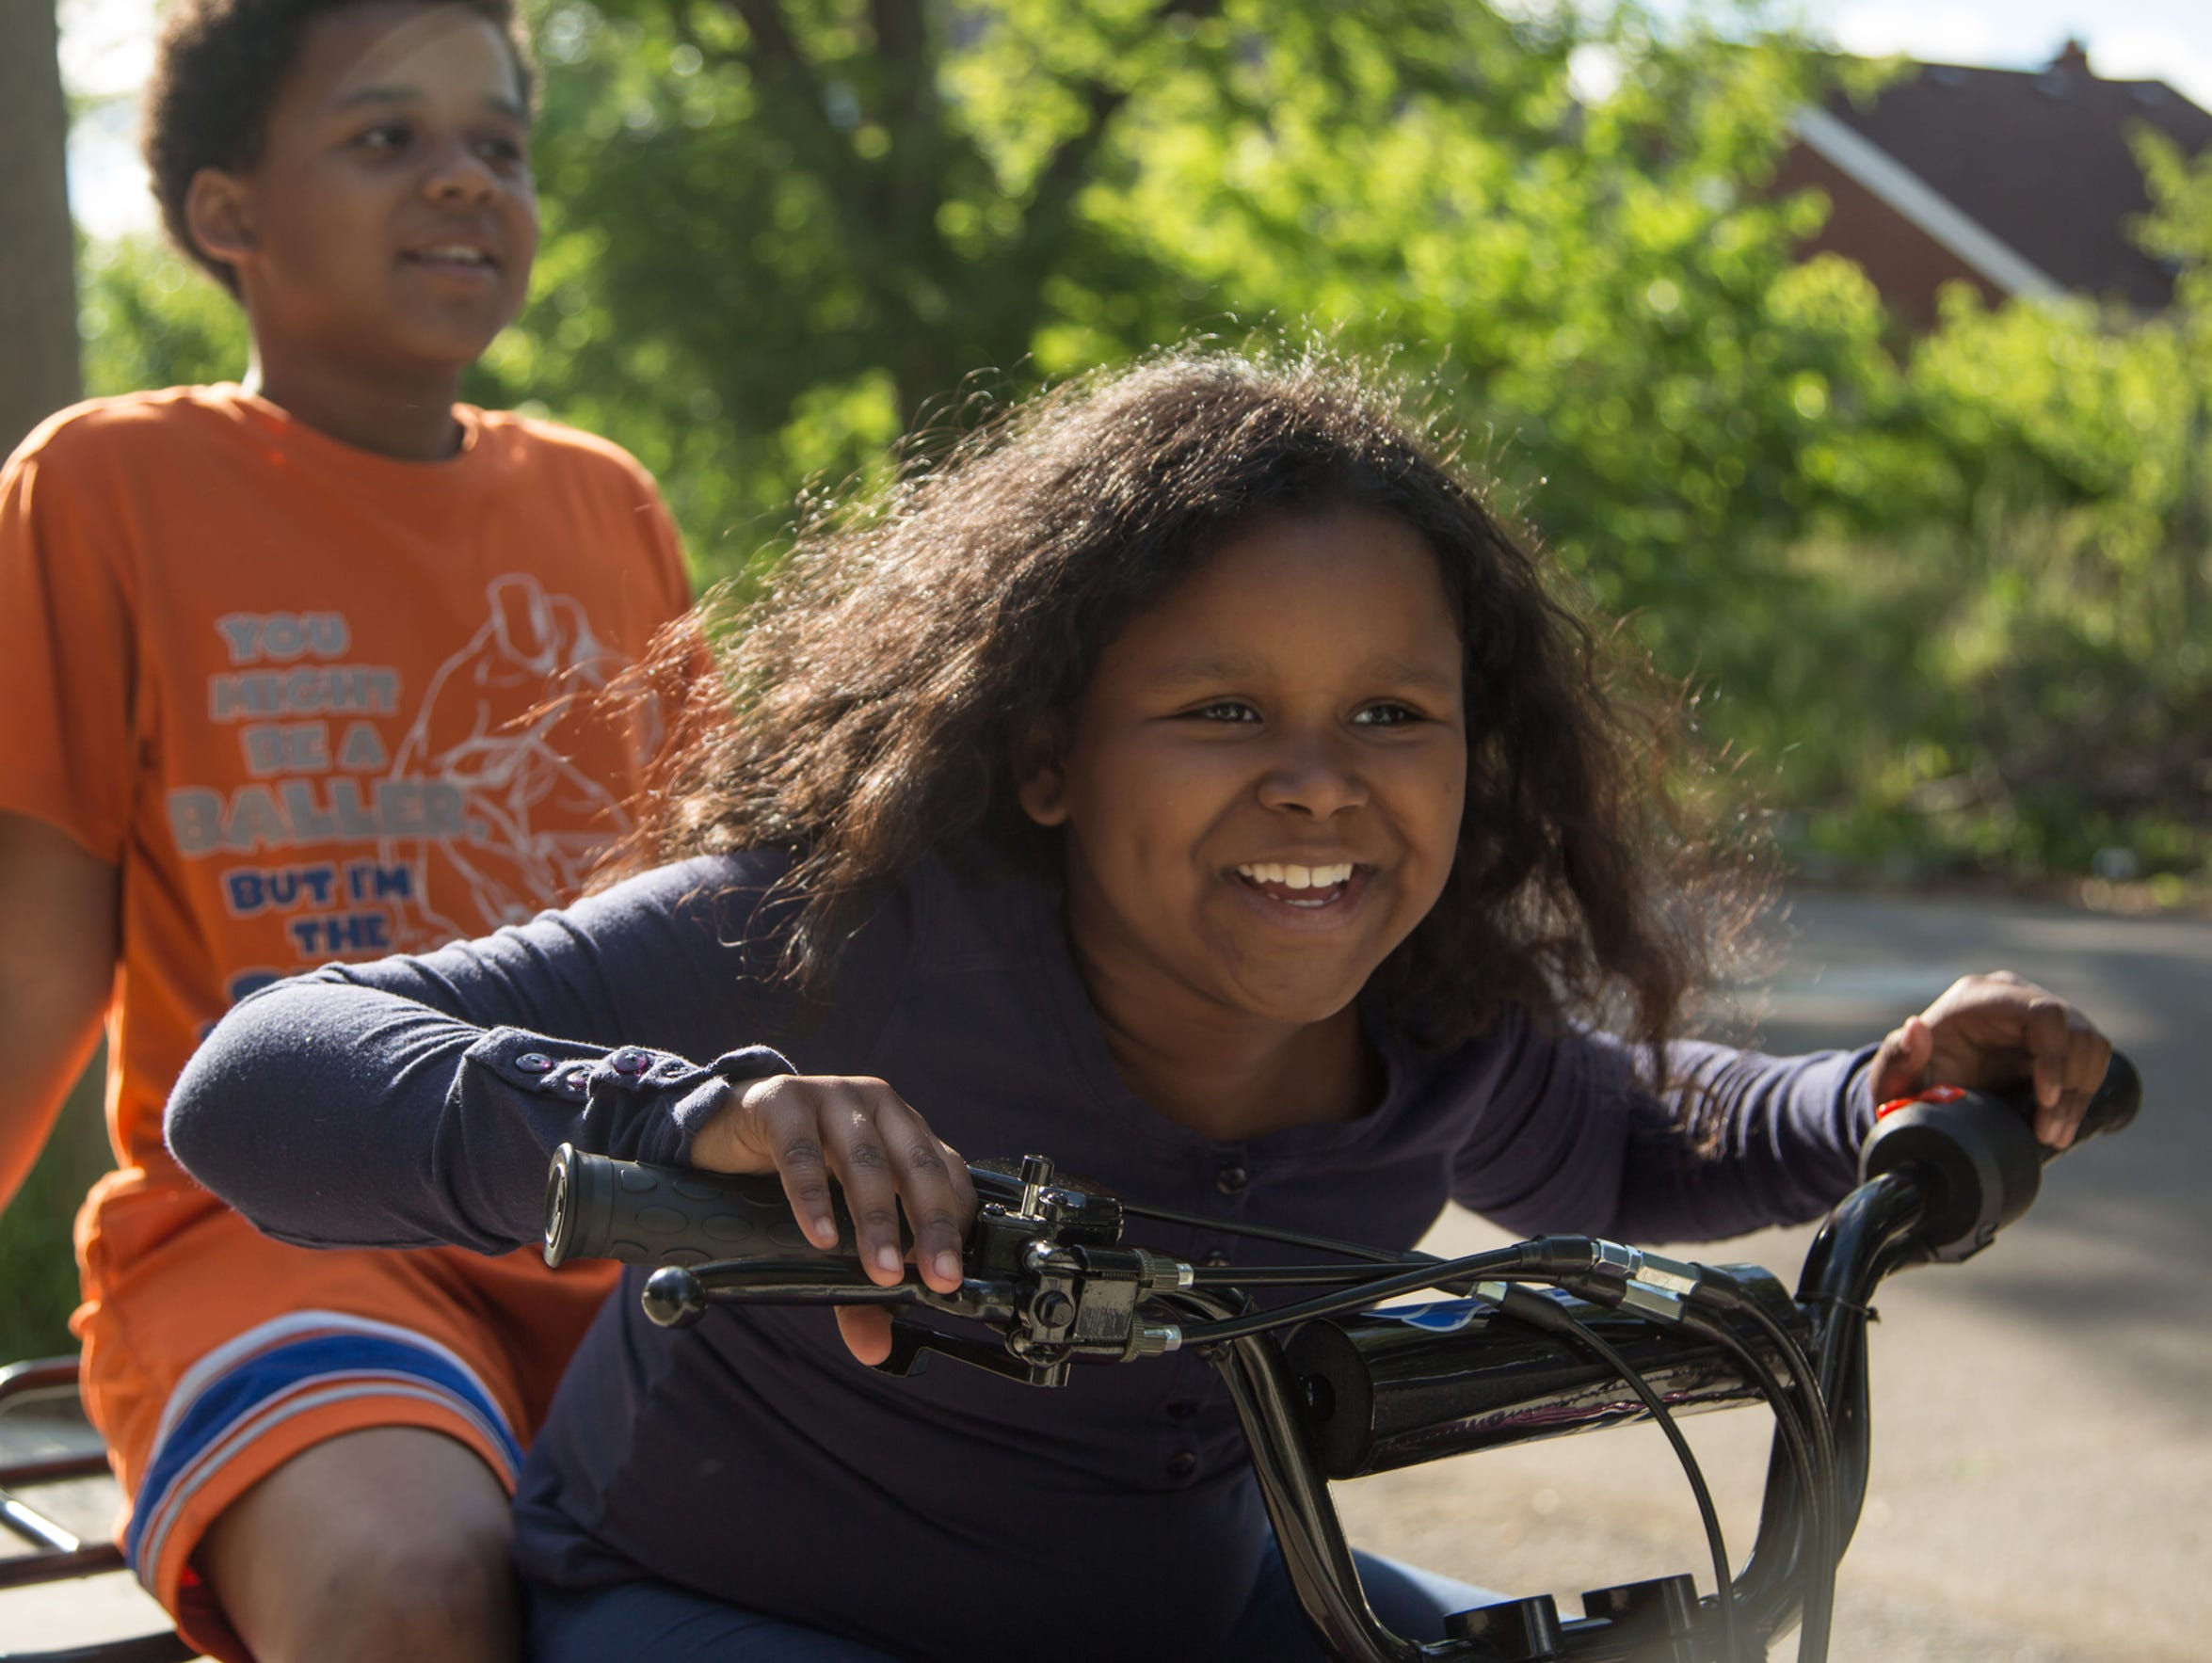 India Williams of Detroit laughs while waiting to ride